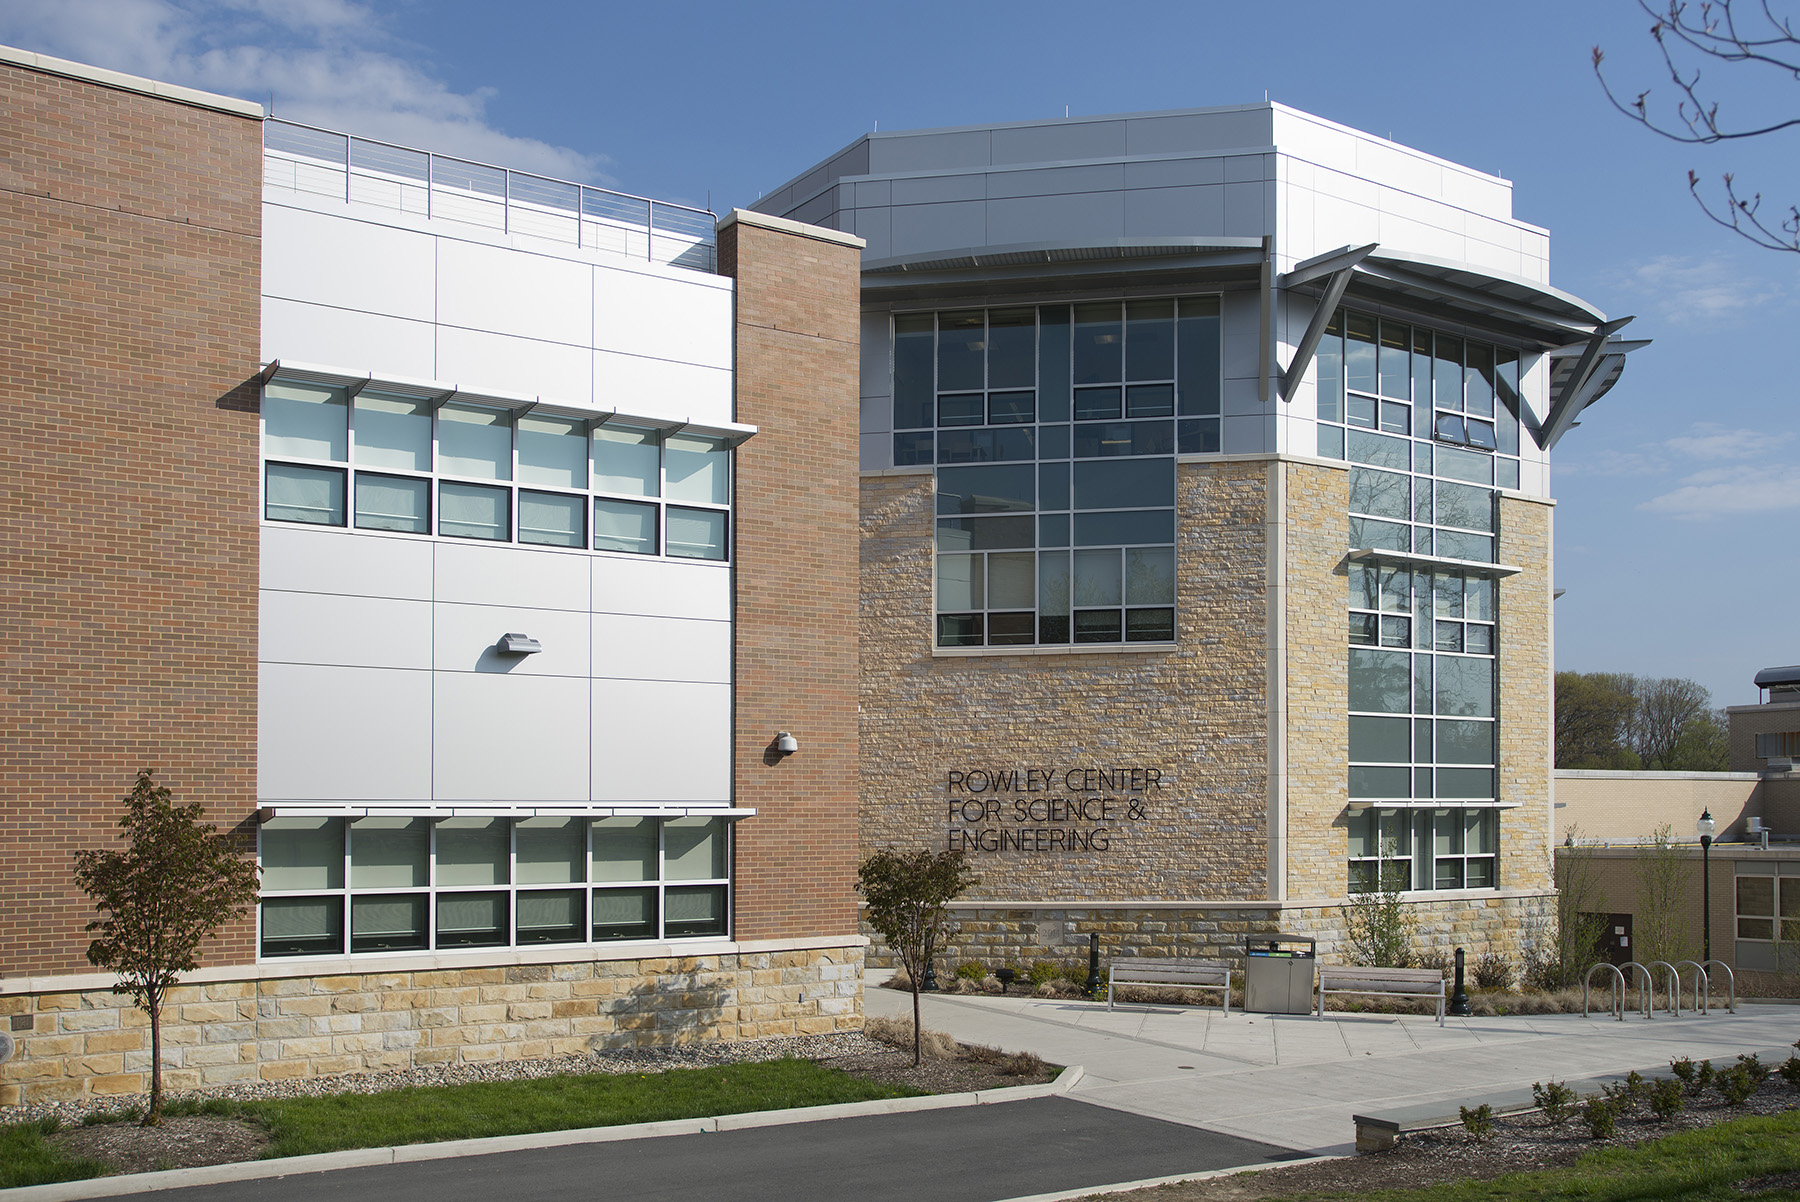 rowley center for science and engineering